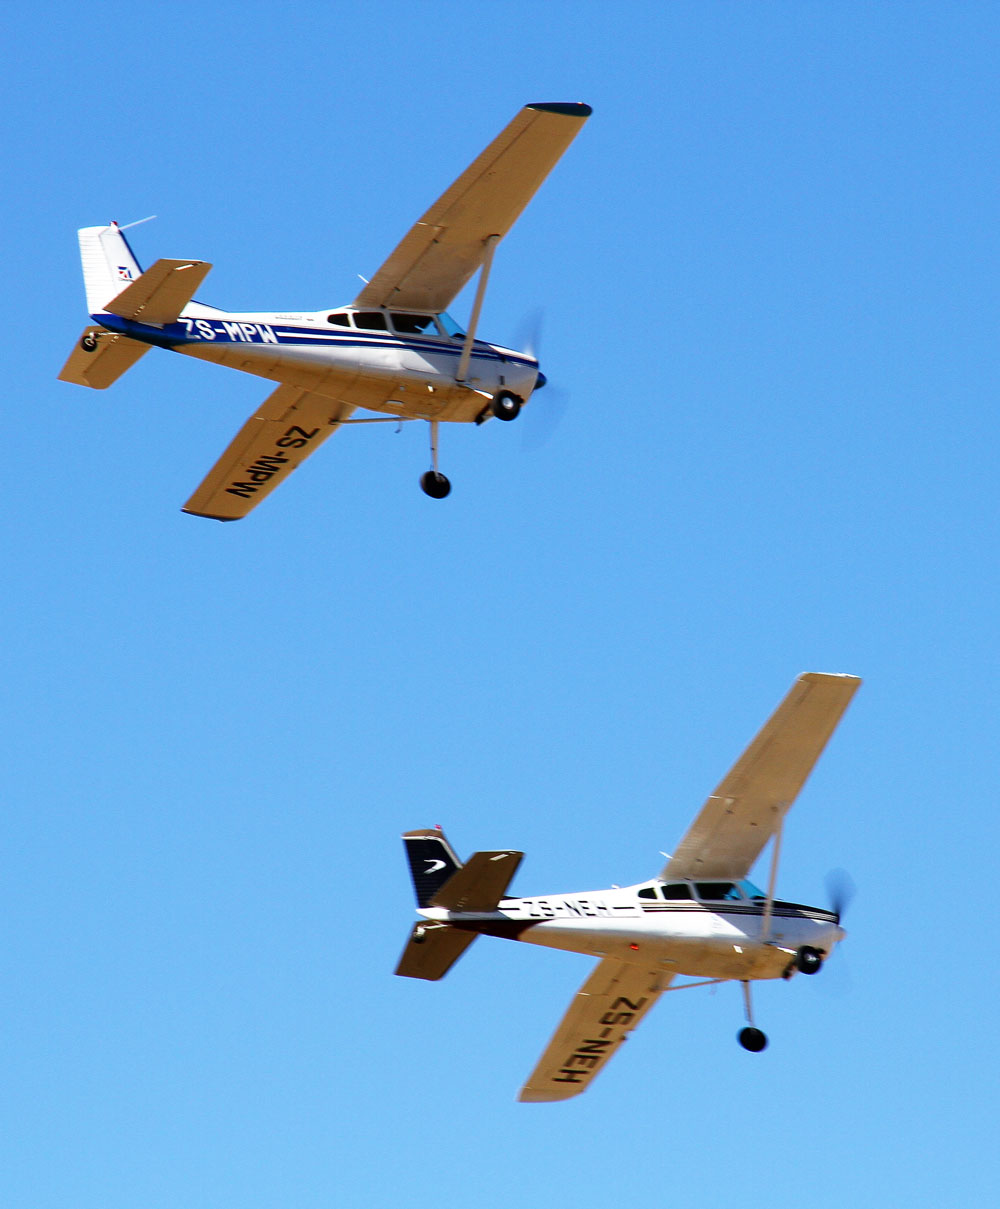 Two Cessna 180s flying in formation at Brakpan